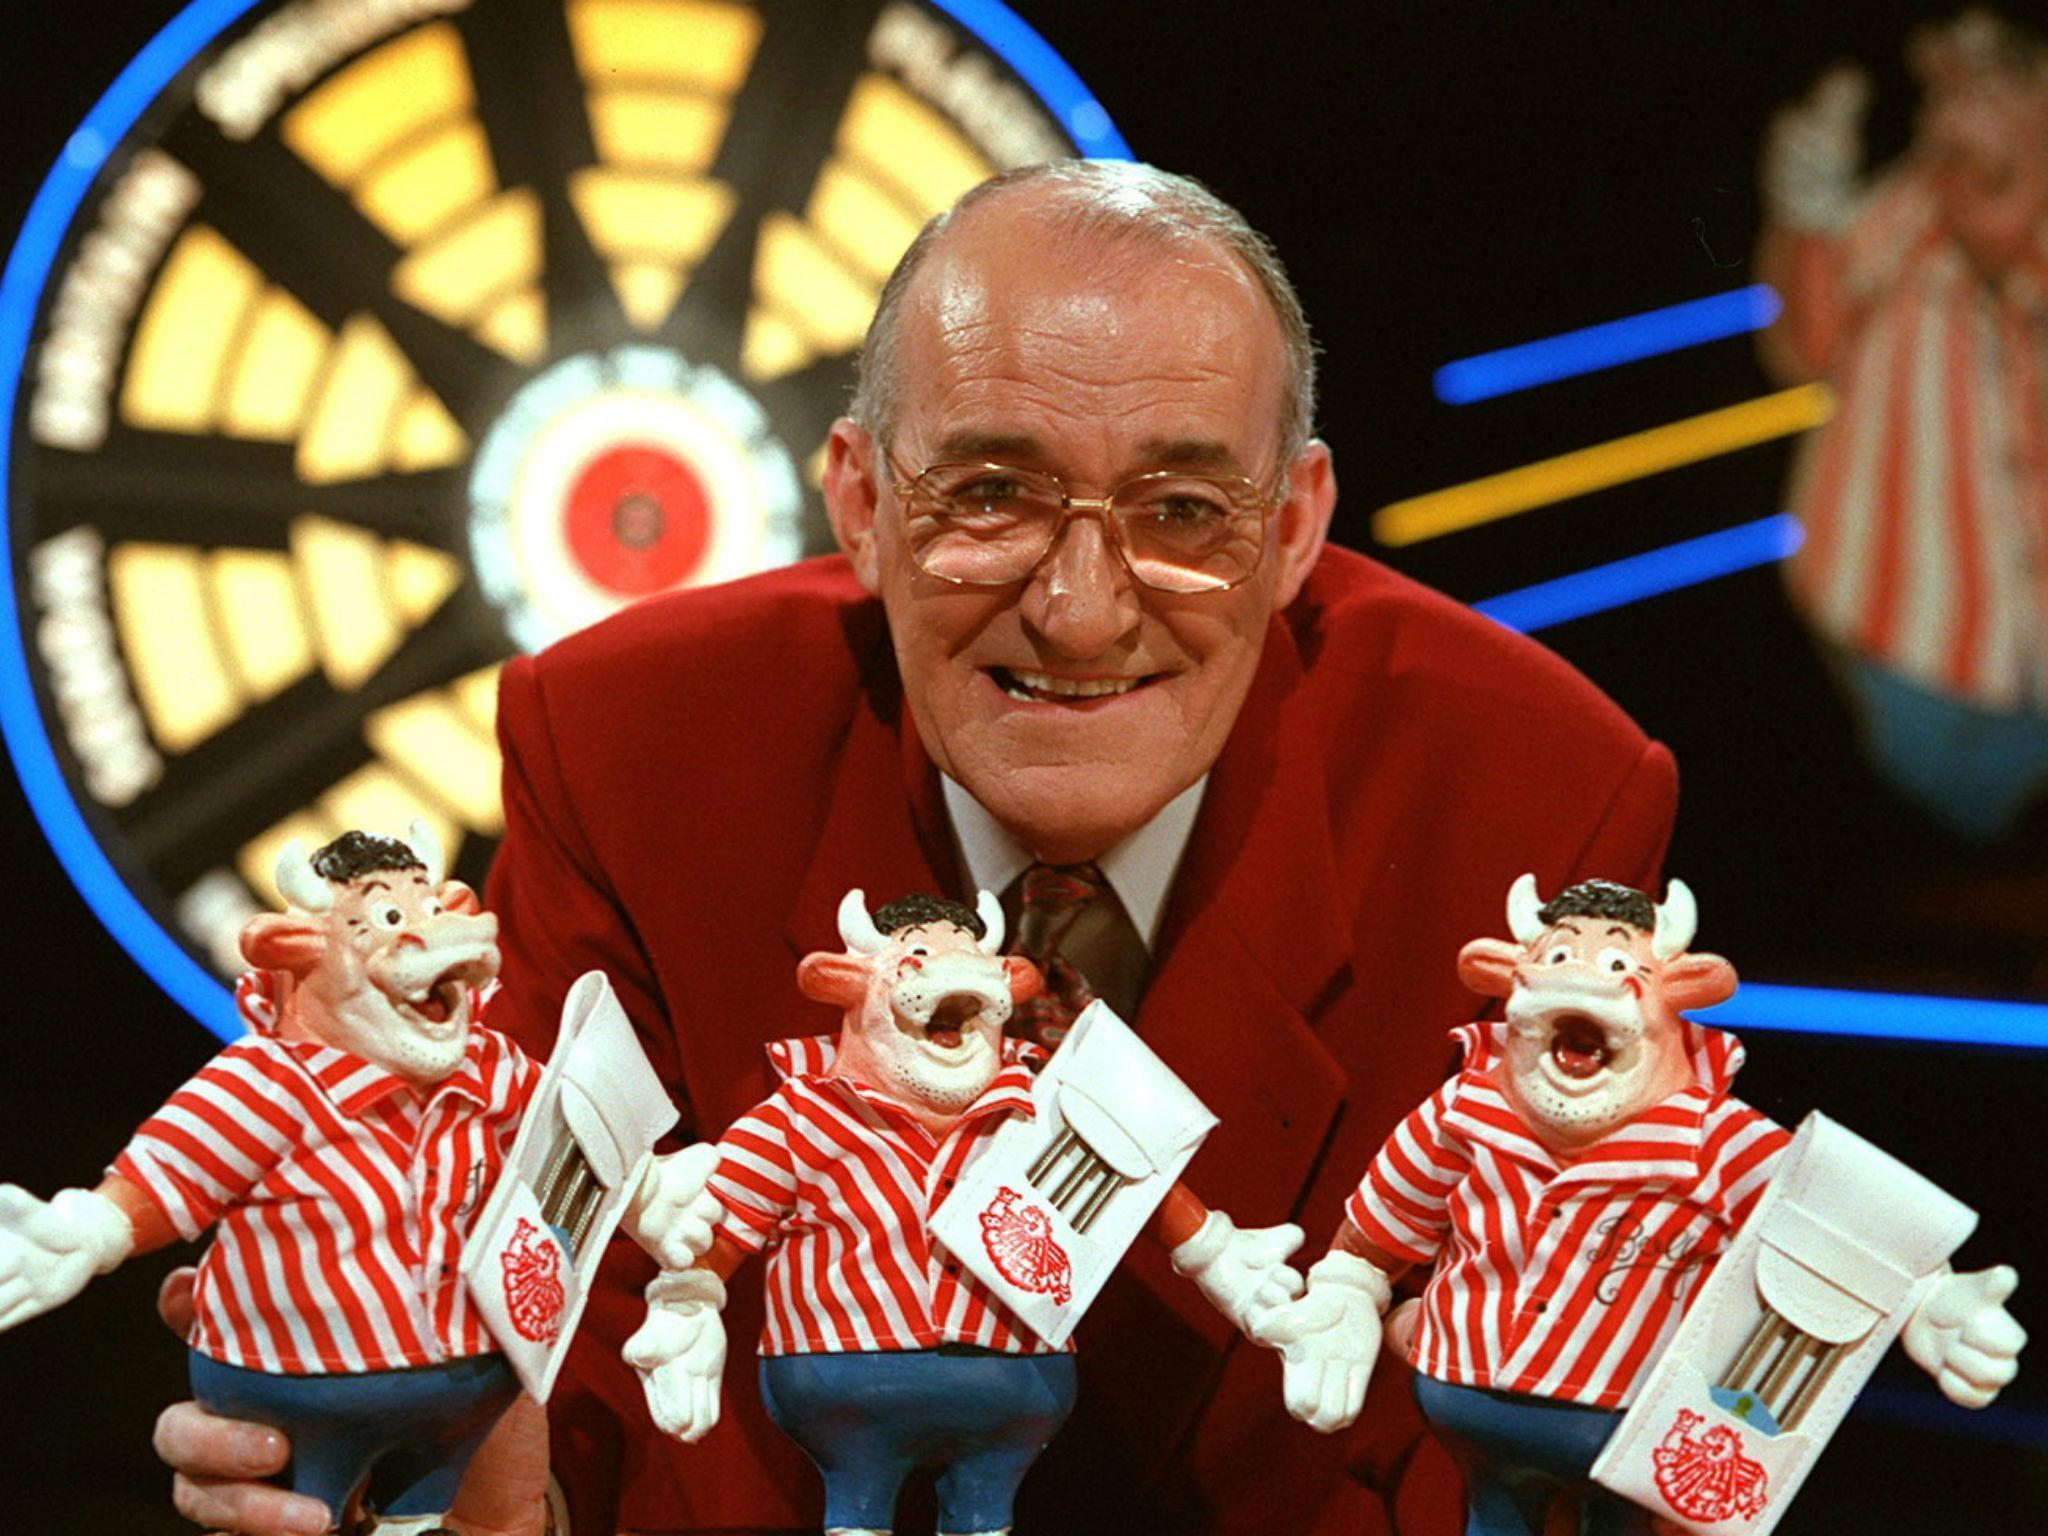 Jim Bowen Bullseye Host And Standup Comedians Aged  The Independent